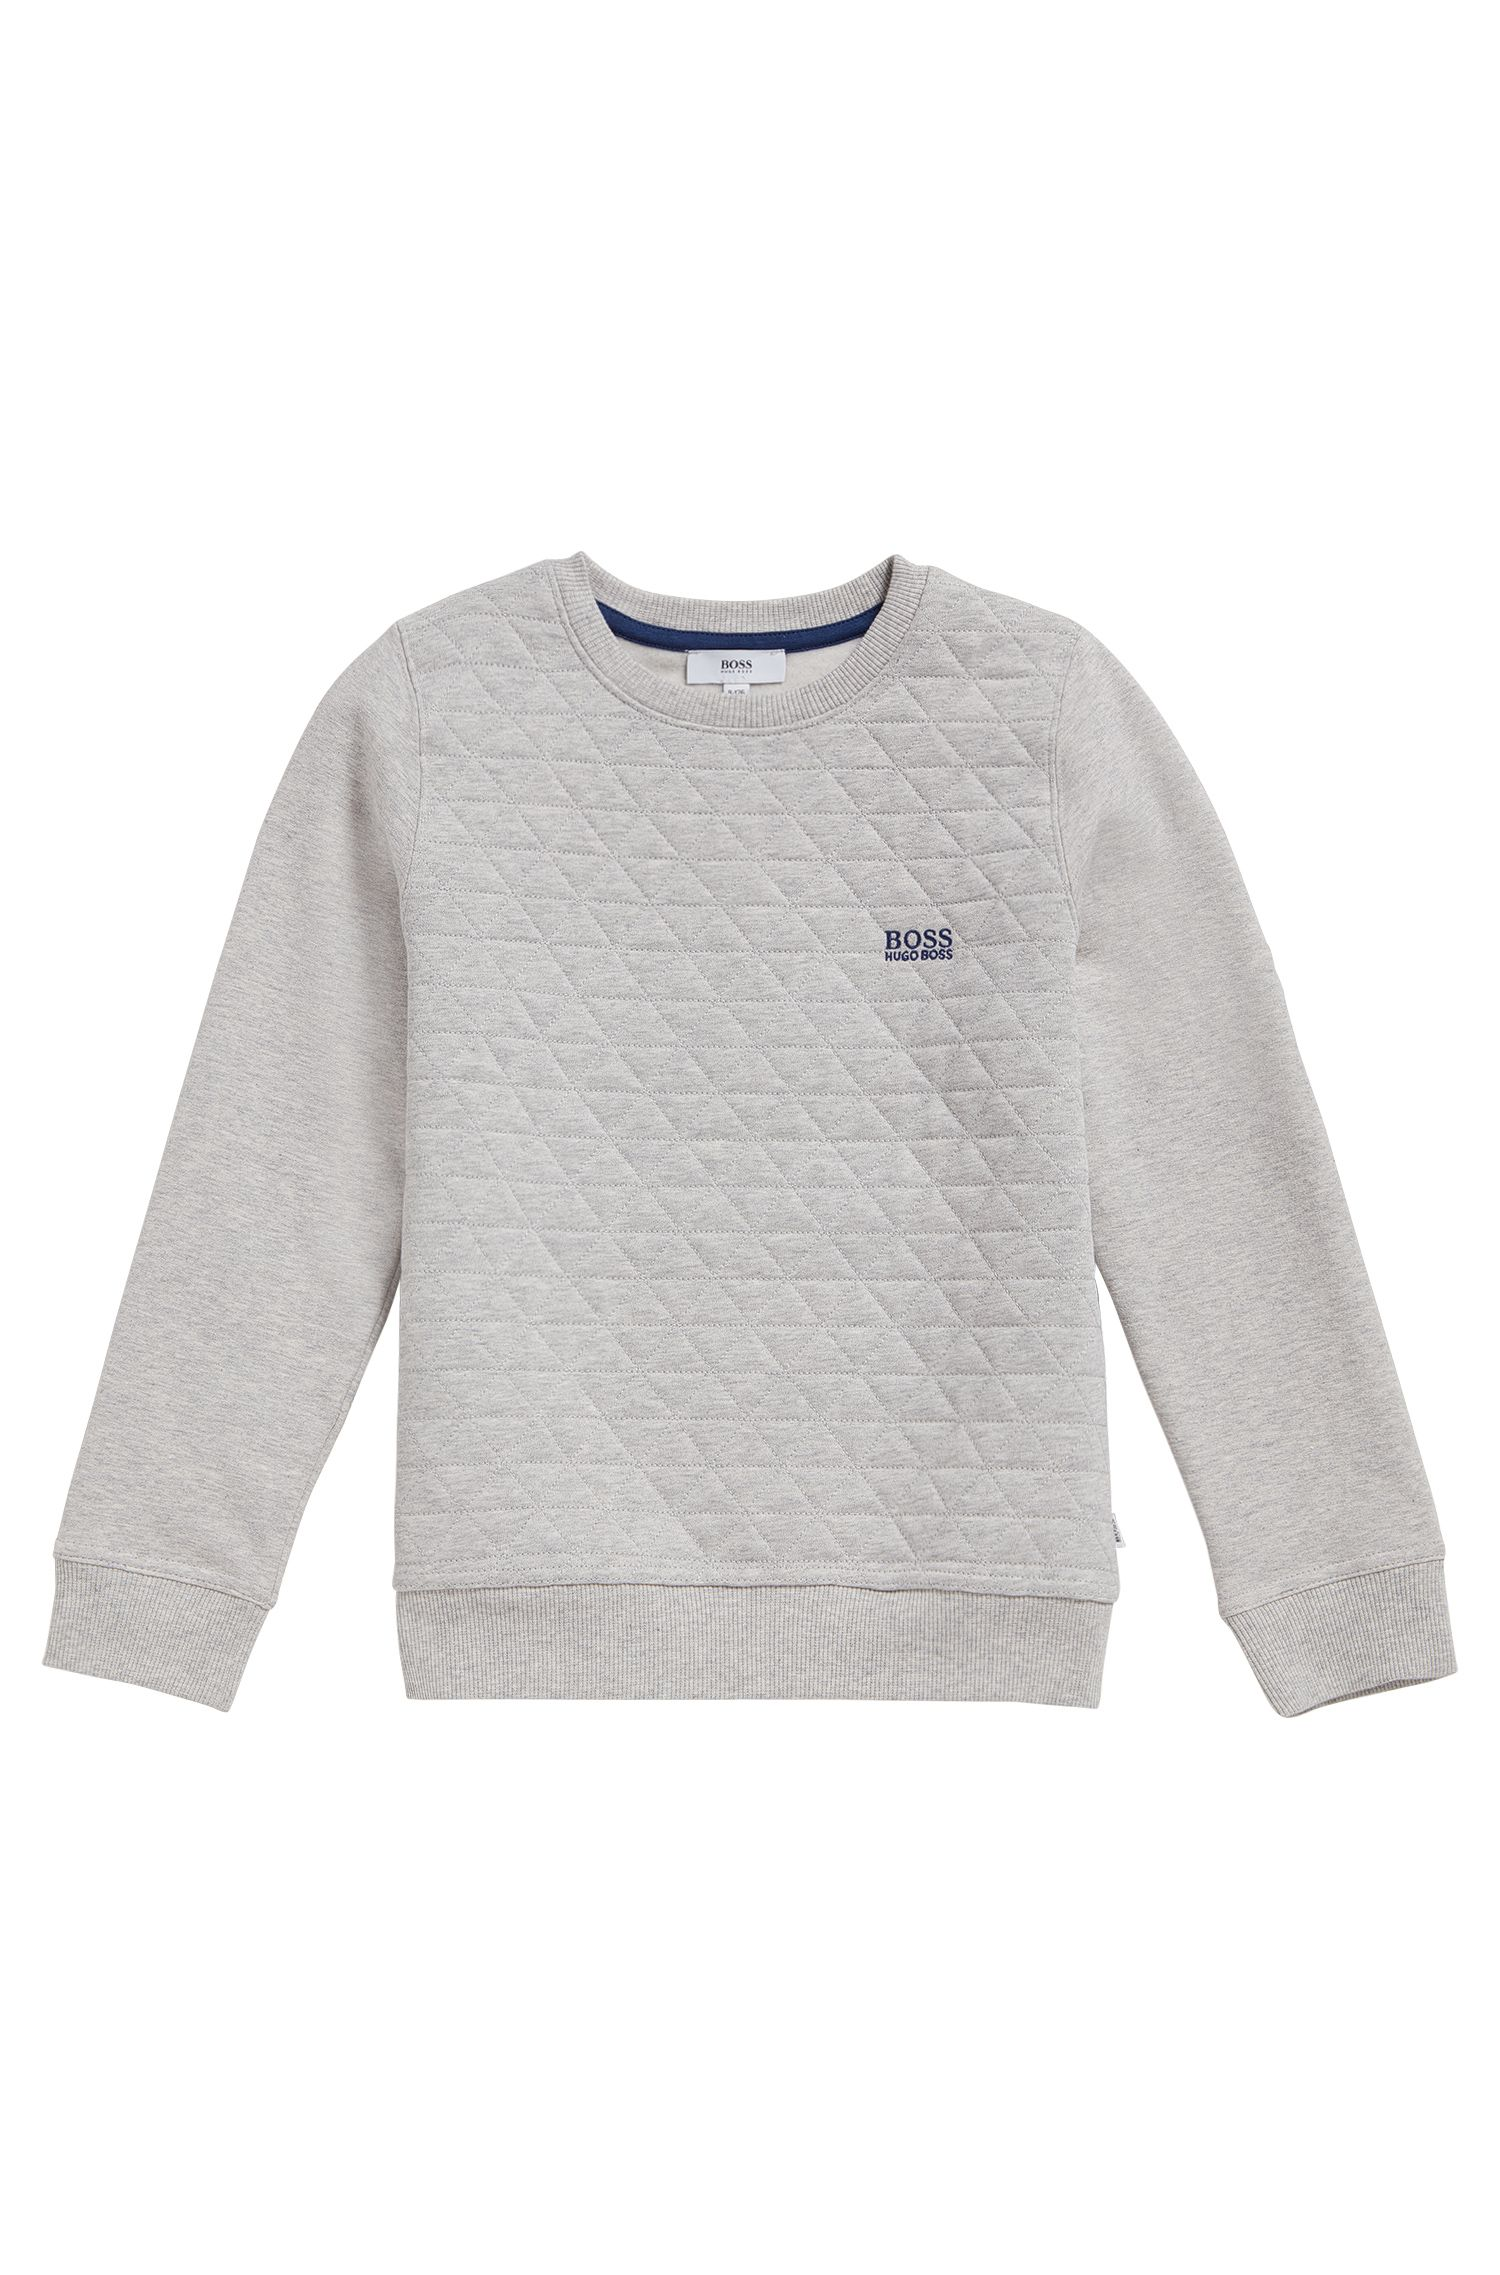 Kids' sweatshirt in stretch cotton blend: 'J25A03'